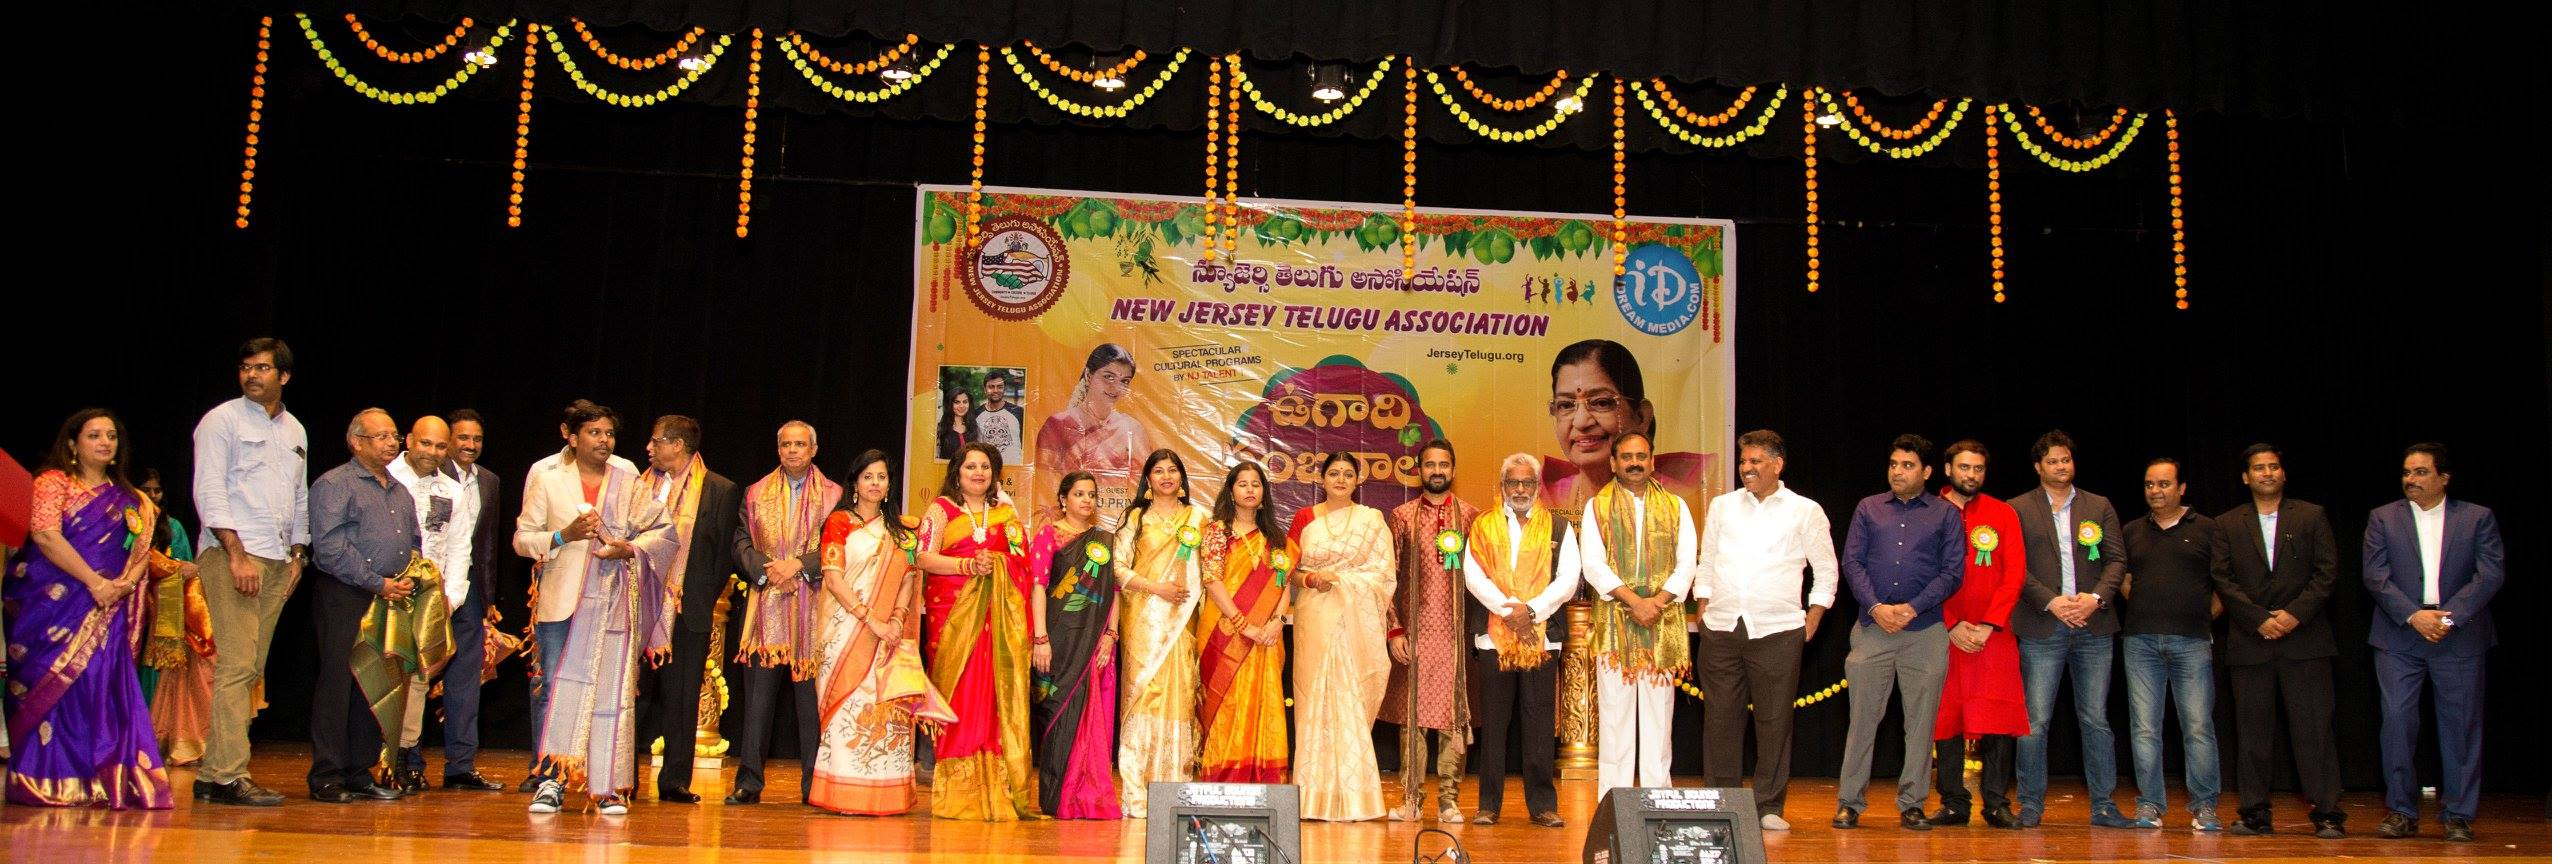 New Jersey telugu Association Team Members